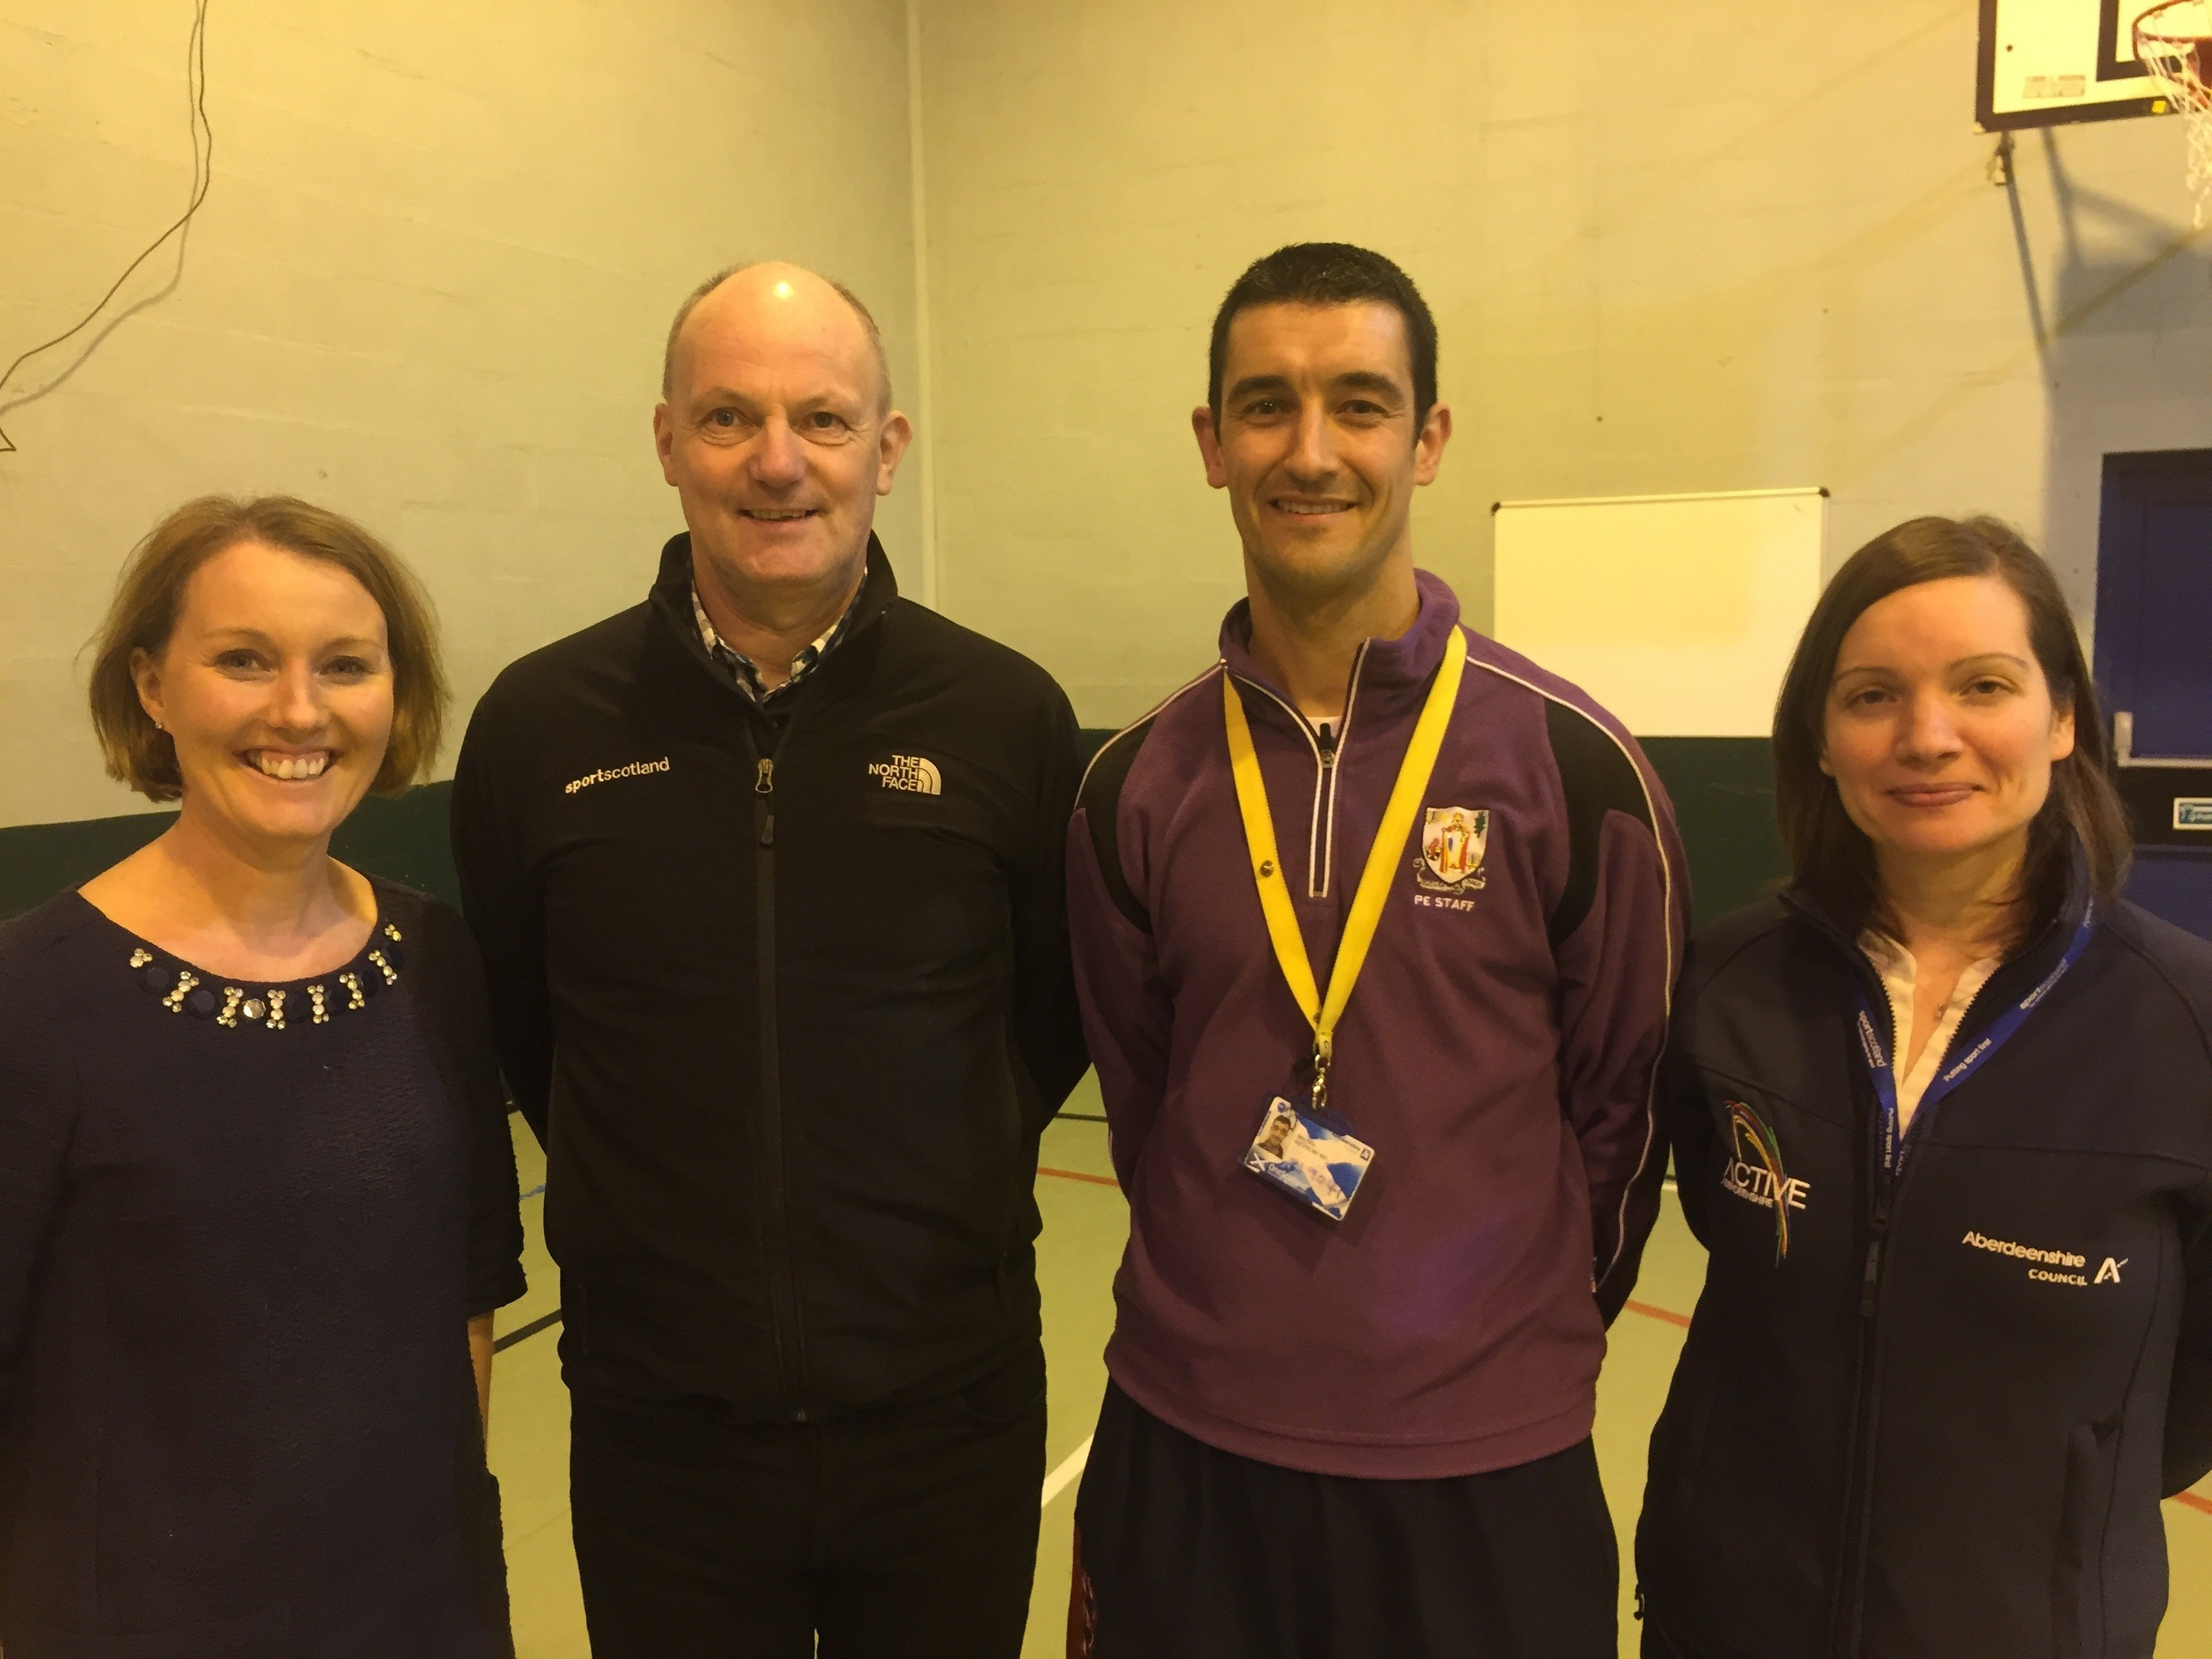 Head teacher Judith Wight, Alan Clark from Sportscotland, PE teacher Barry Petrie and active schools coordinator Susie Mclarty